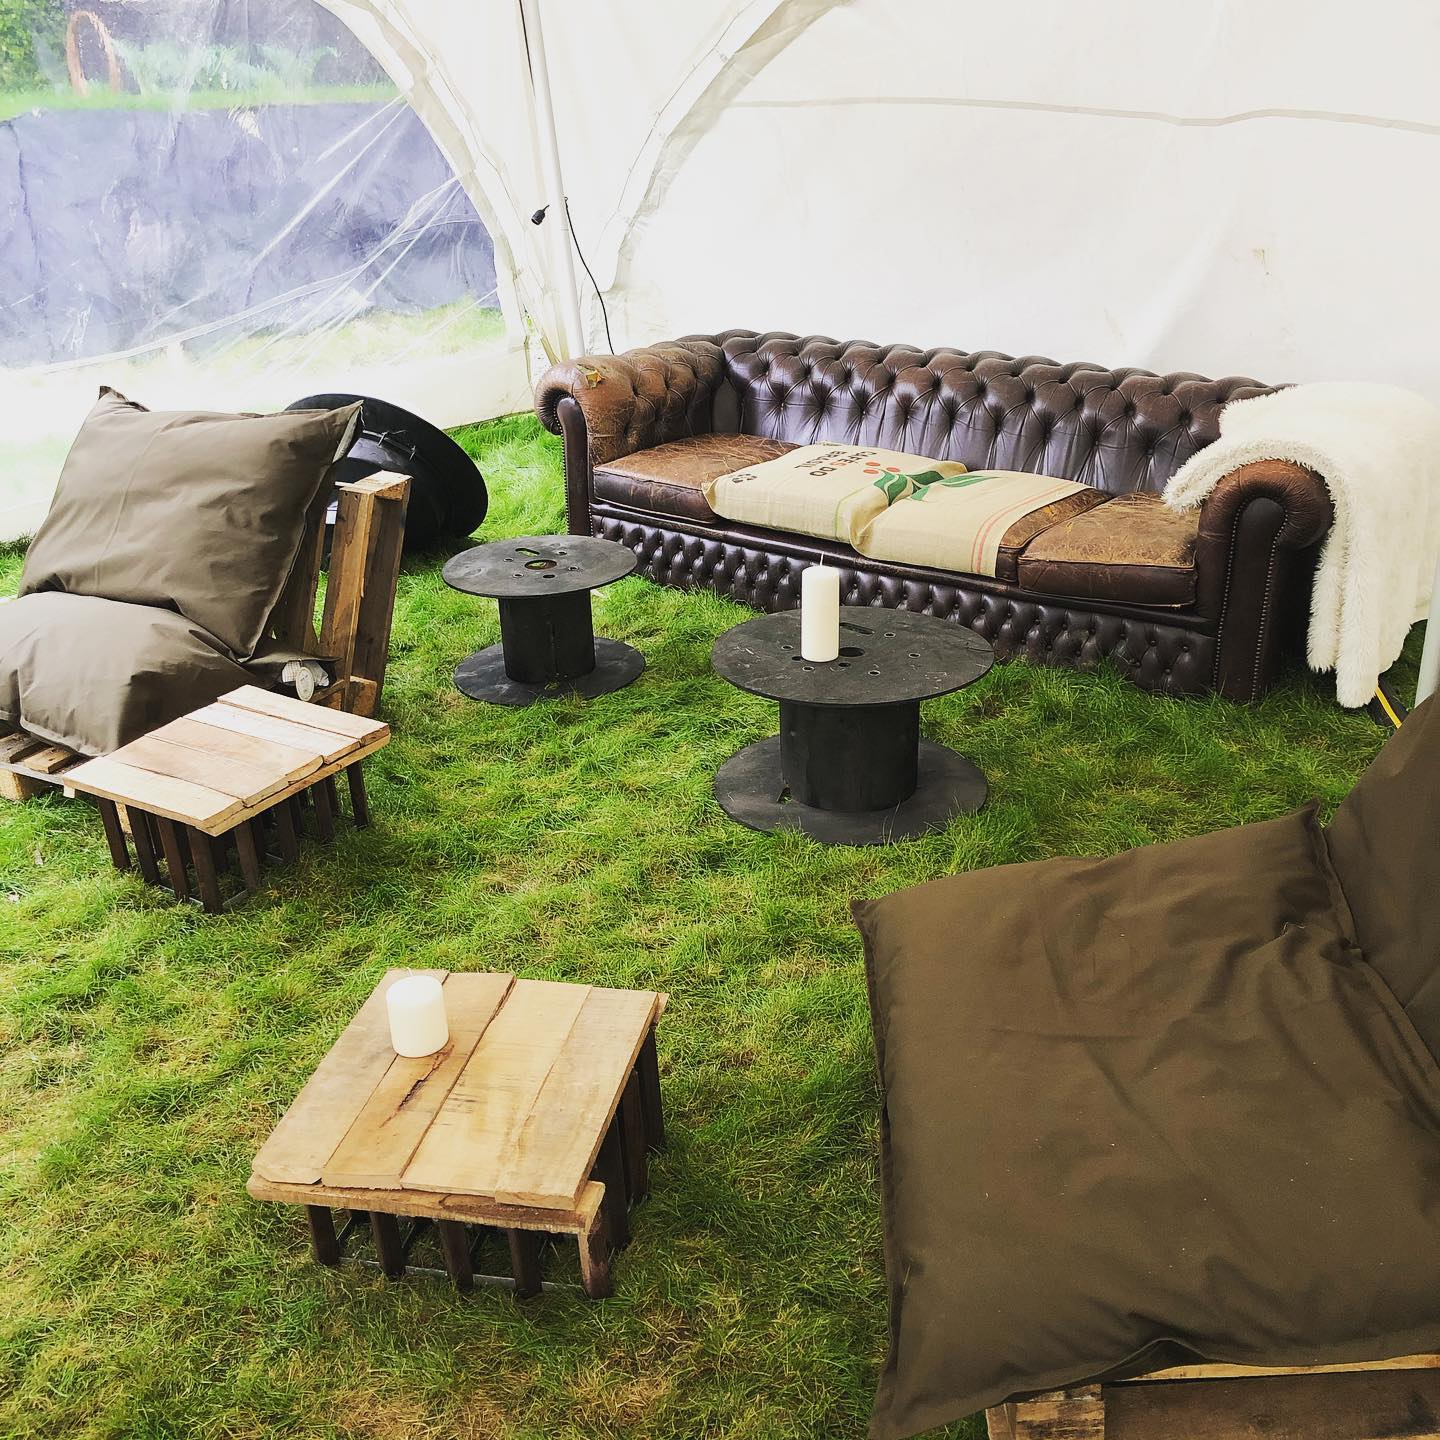 Furniture in marquee ready for event